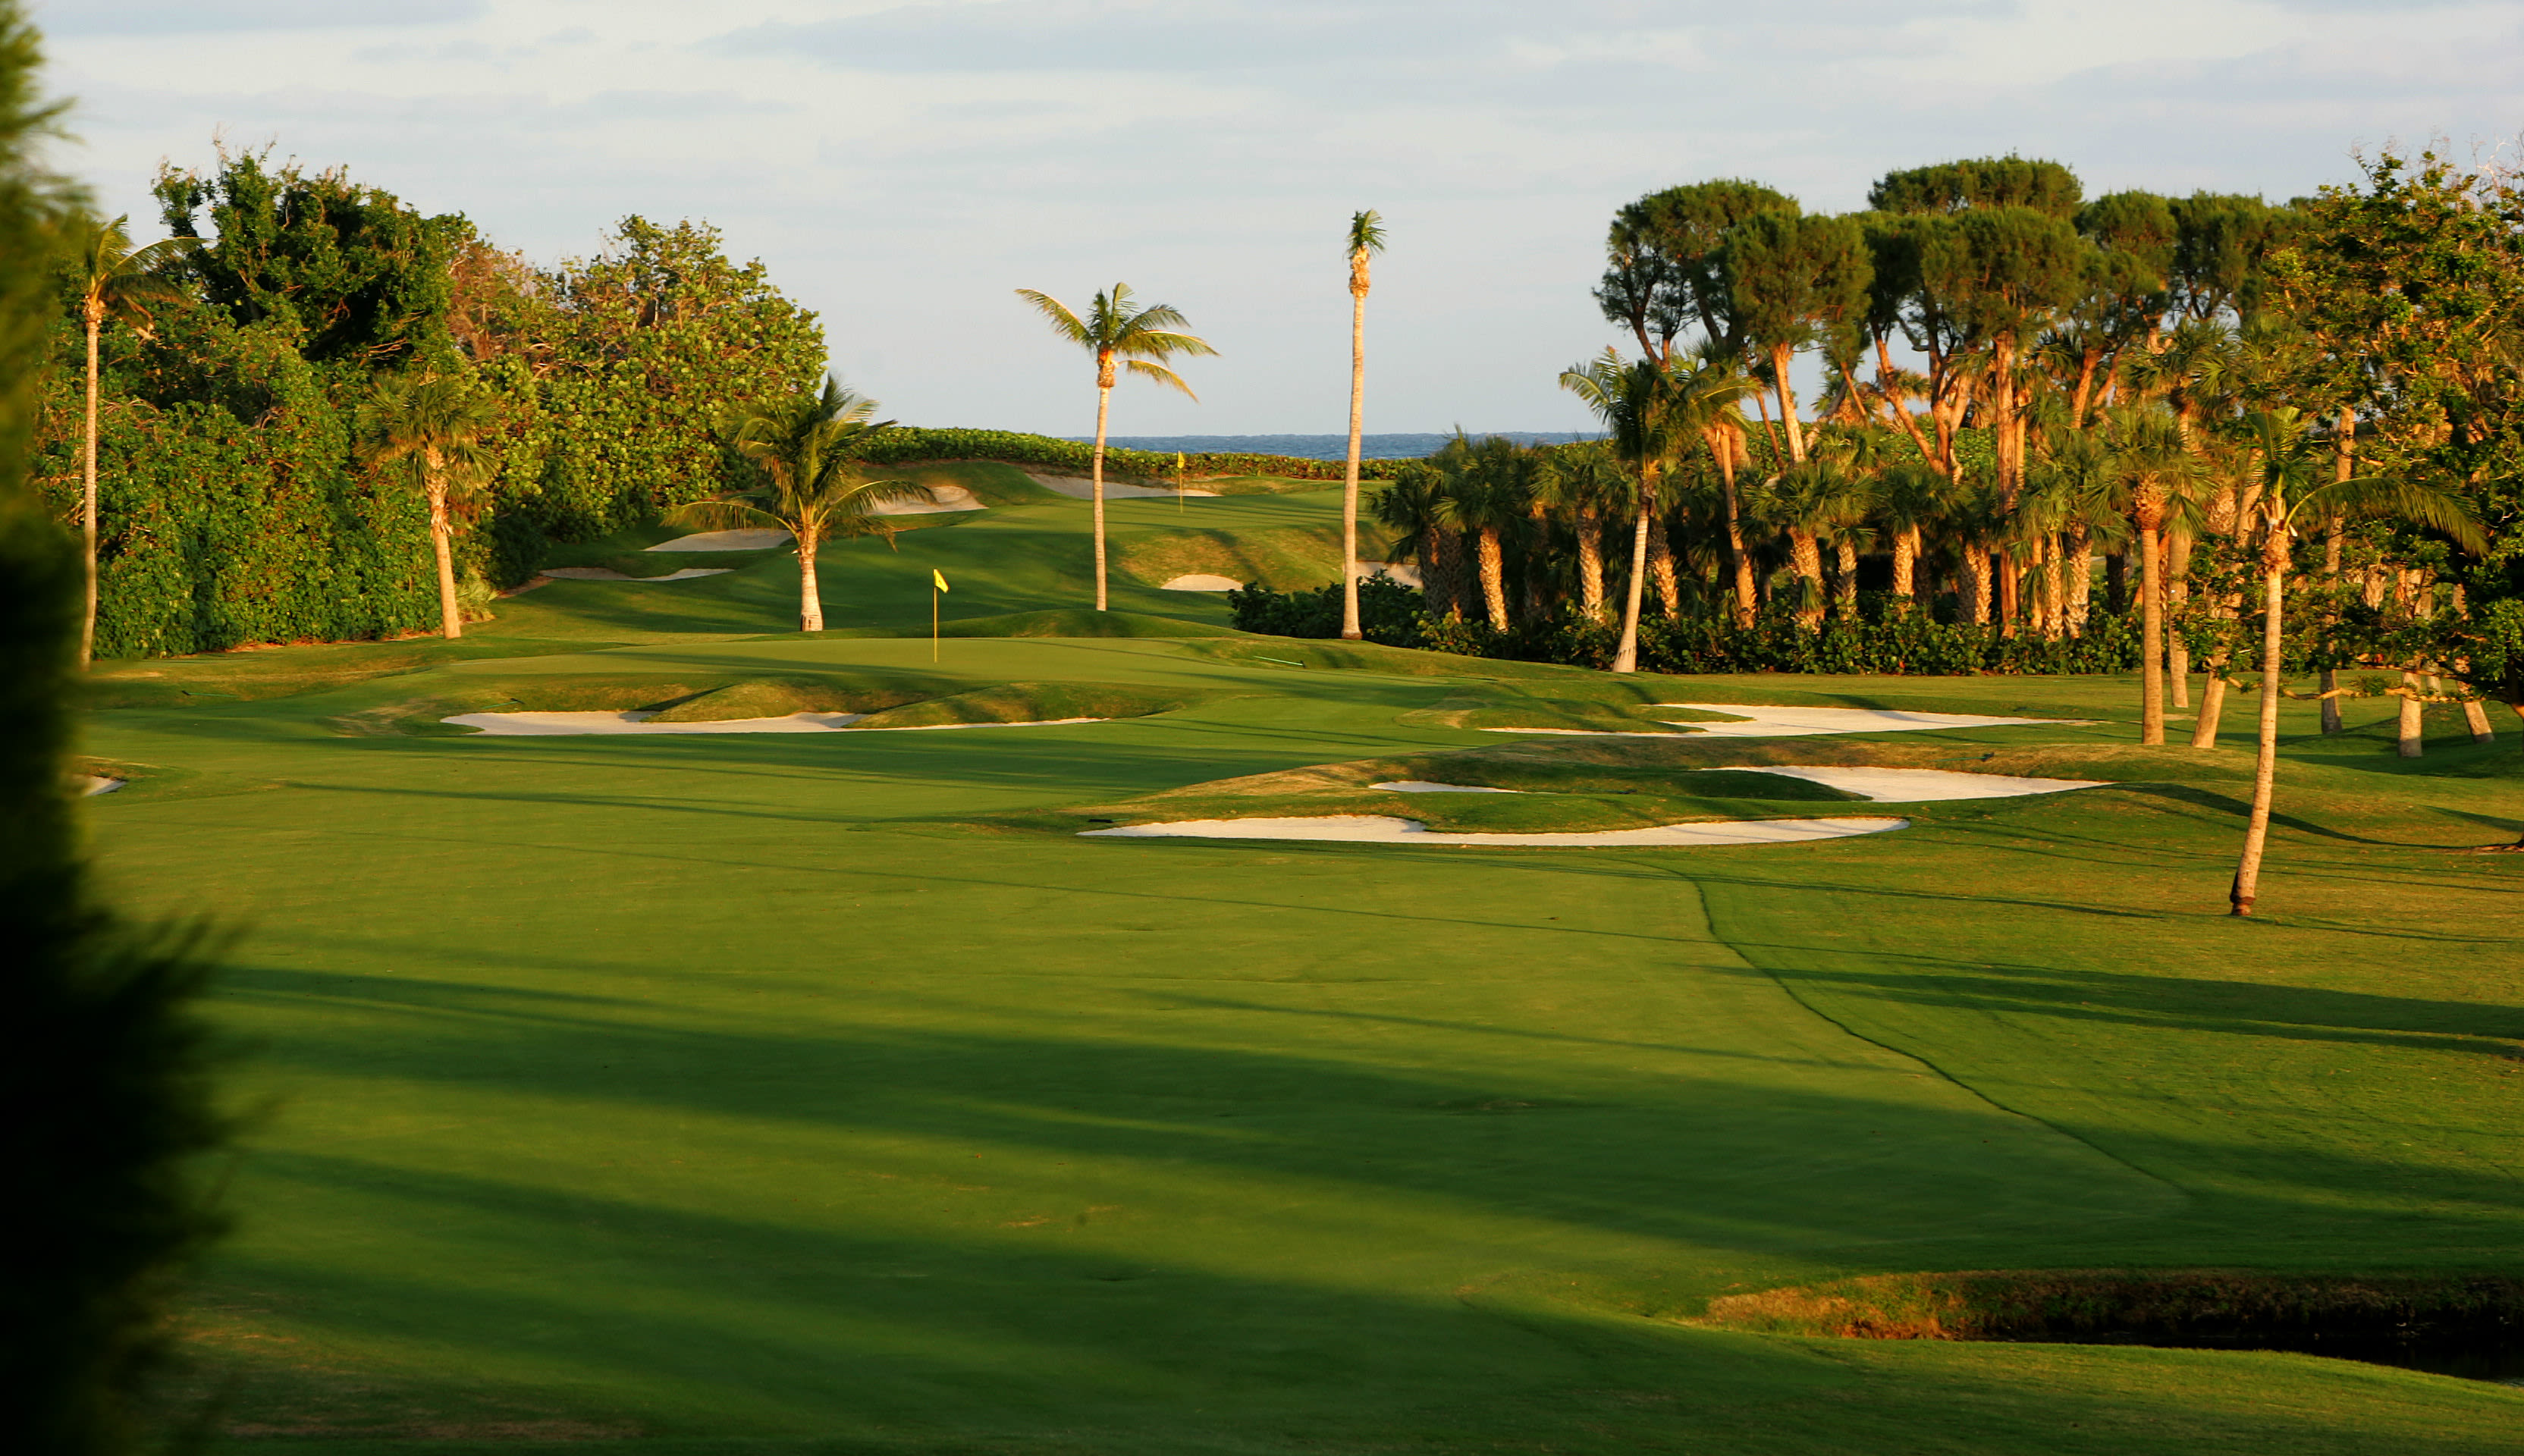 Seminole Golf Club (Photo by David Cannon, Getty Images)